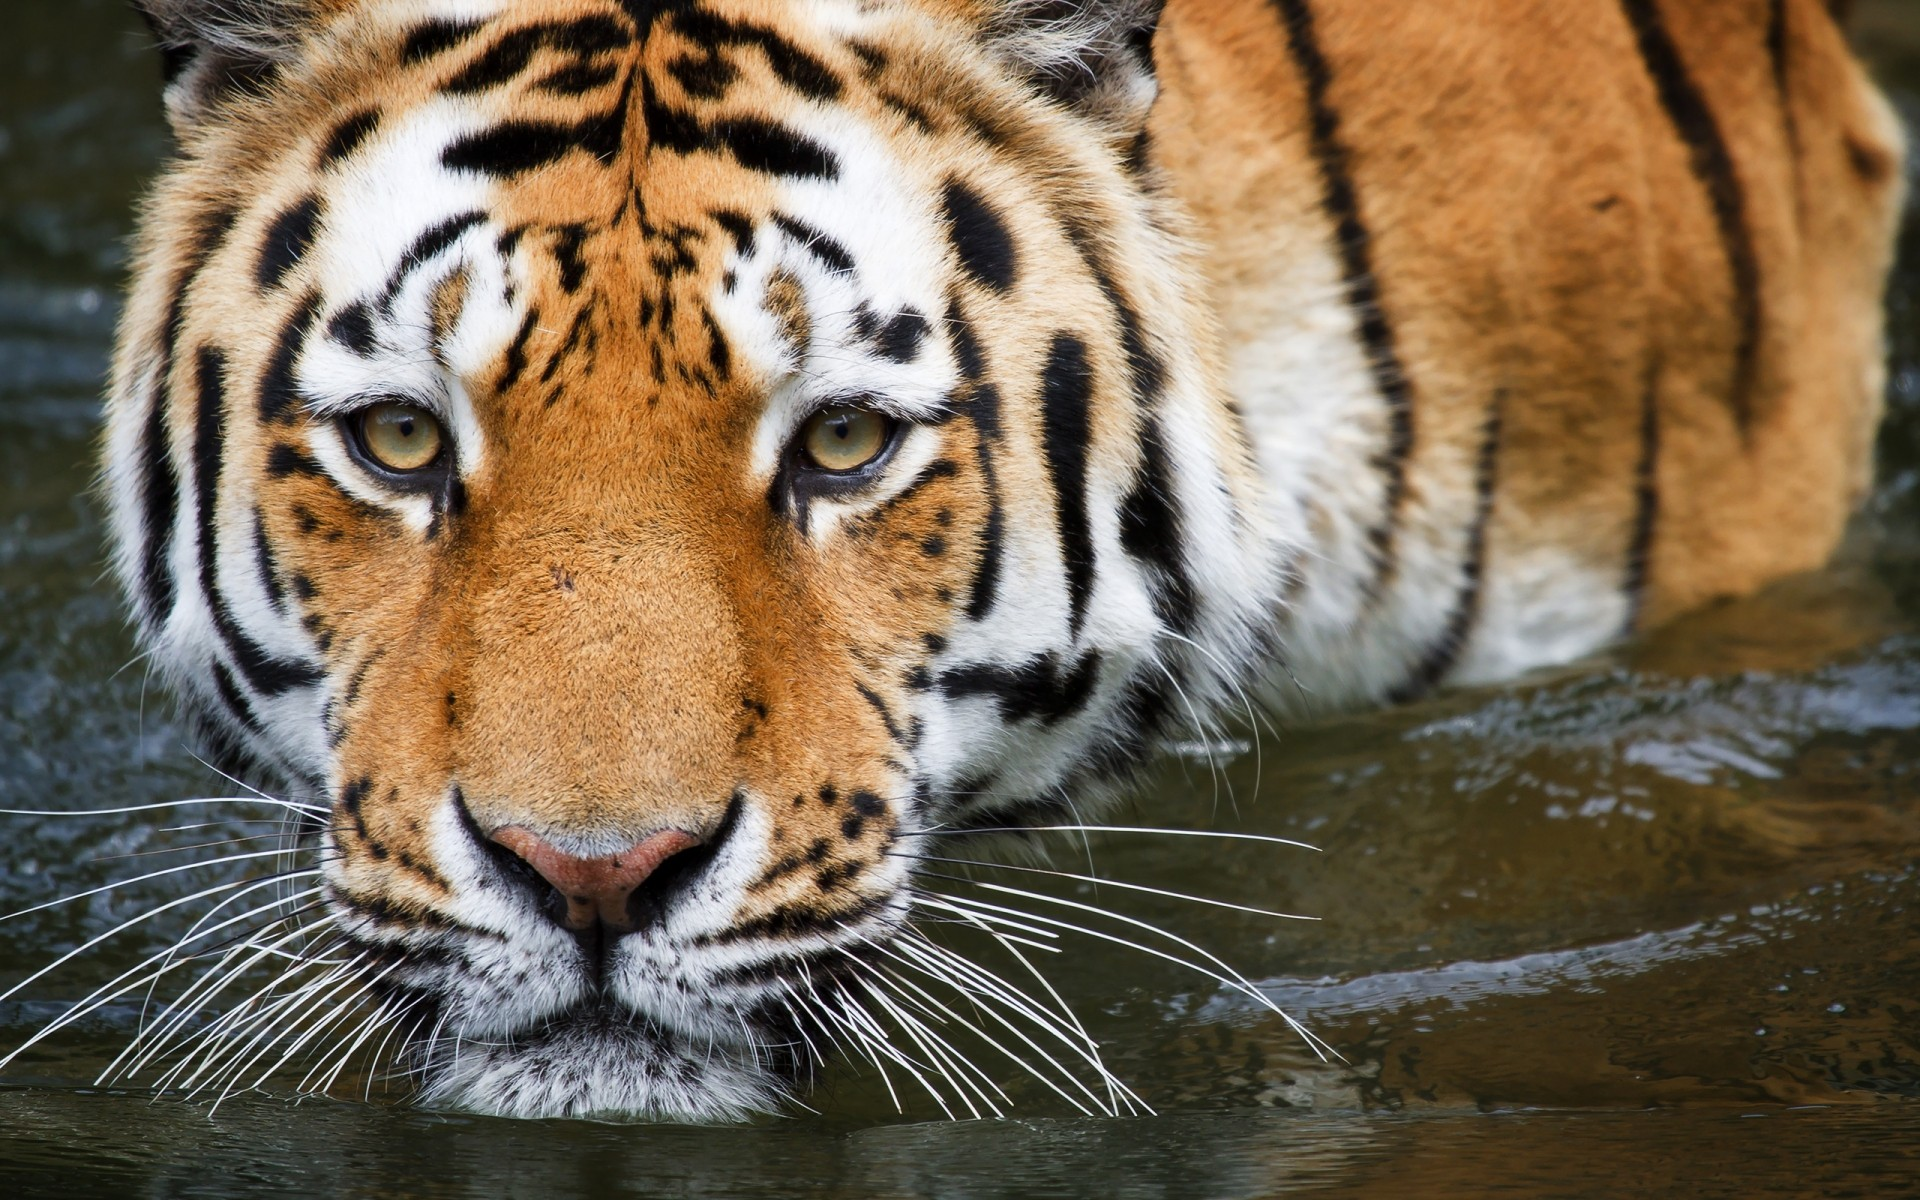 Bathing Tiger IPhone Wallpapers For Free